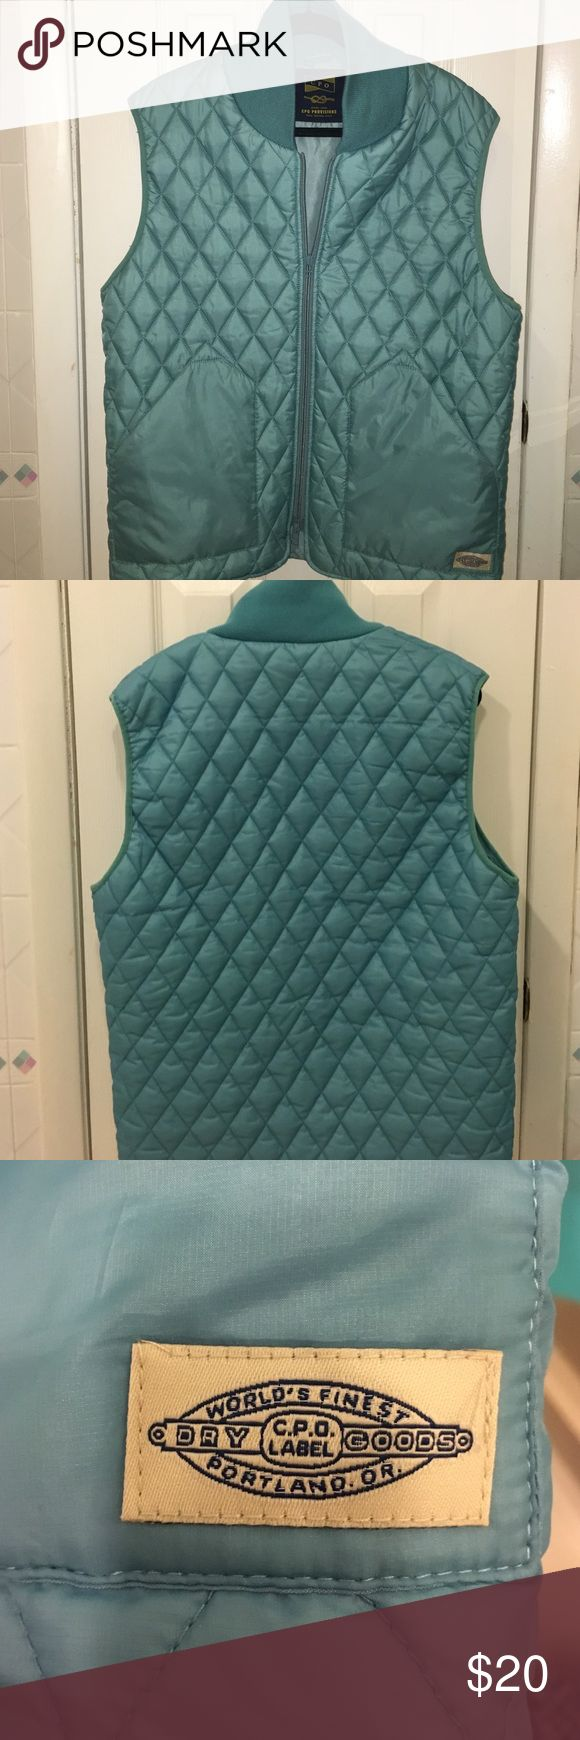 Men's Vest Aqua blue vest CPO provisions from Urban outfitters Urban Outfitters Jackets & Coats Vests